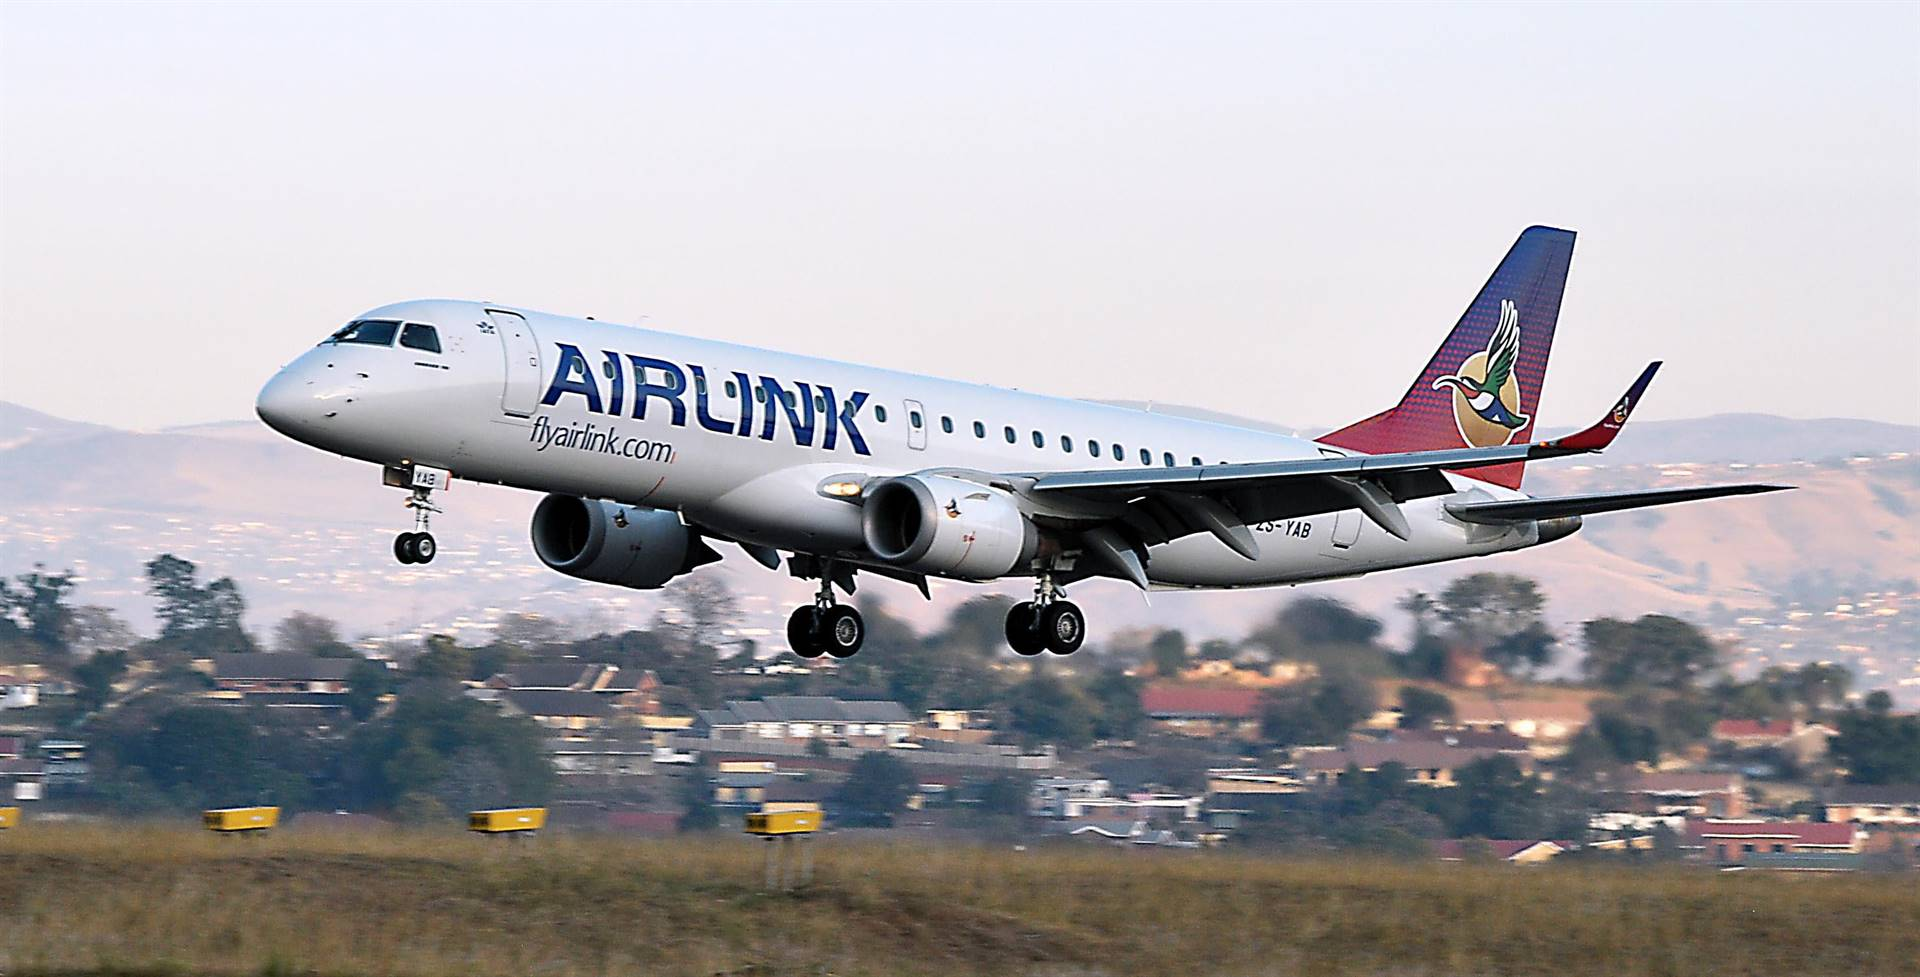 The Airlink plane carrying relief food parcels lands at Oribi Airport on Sunday.